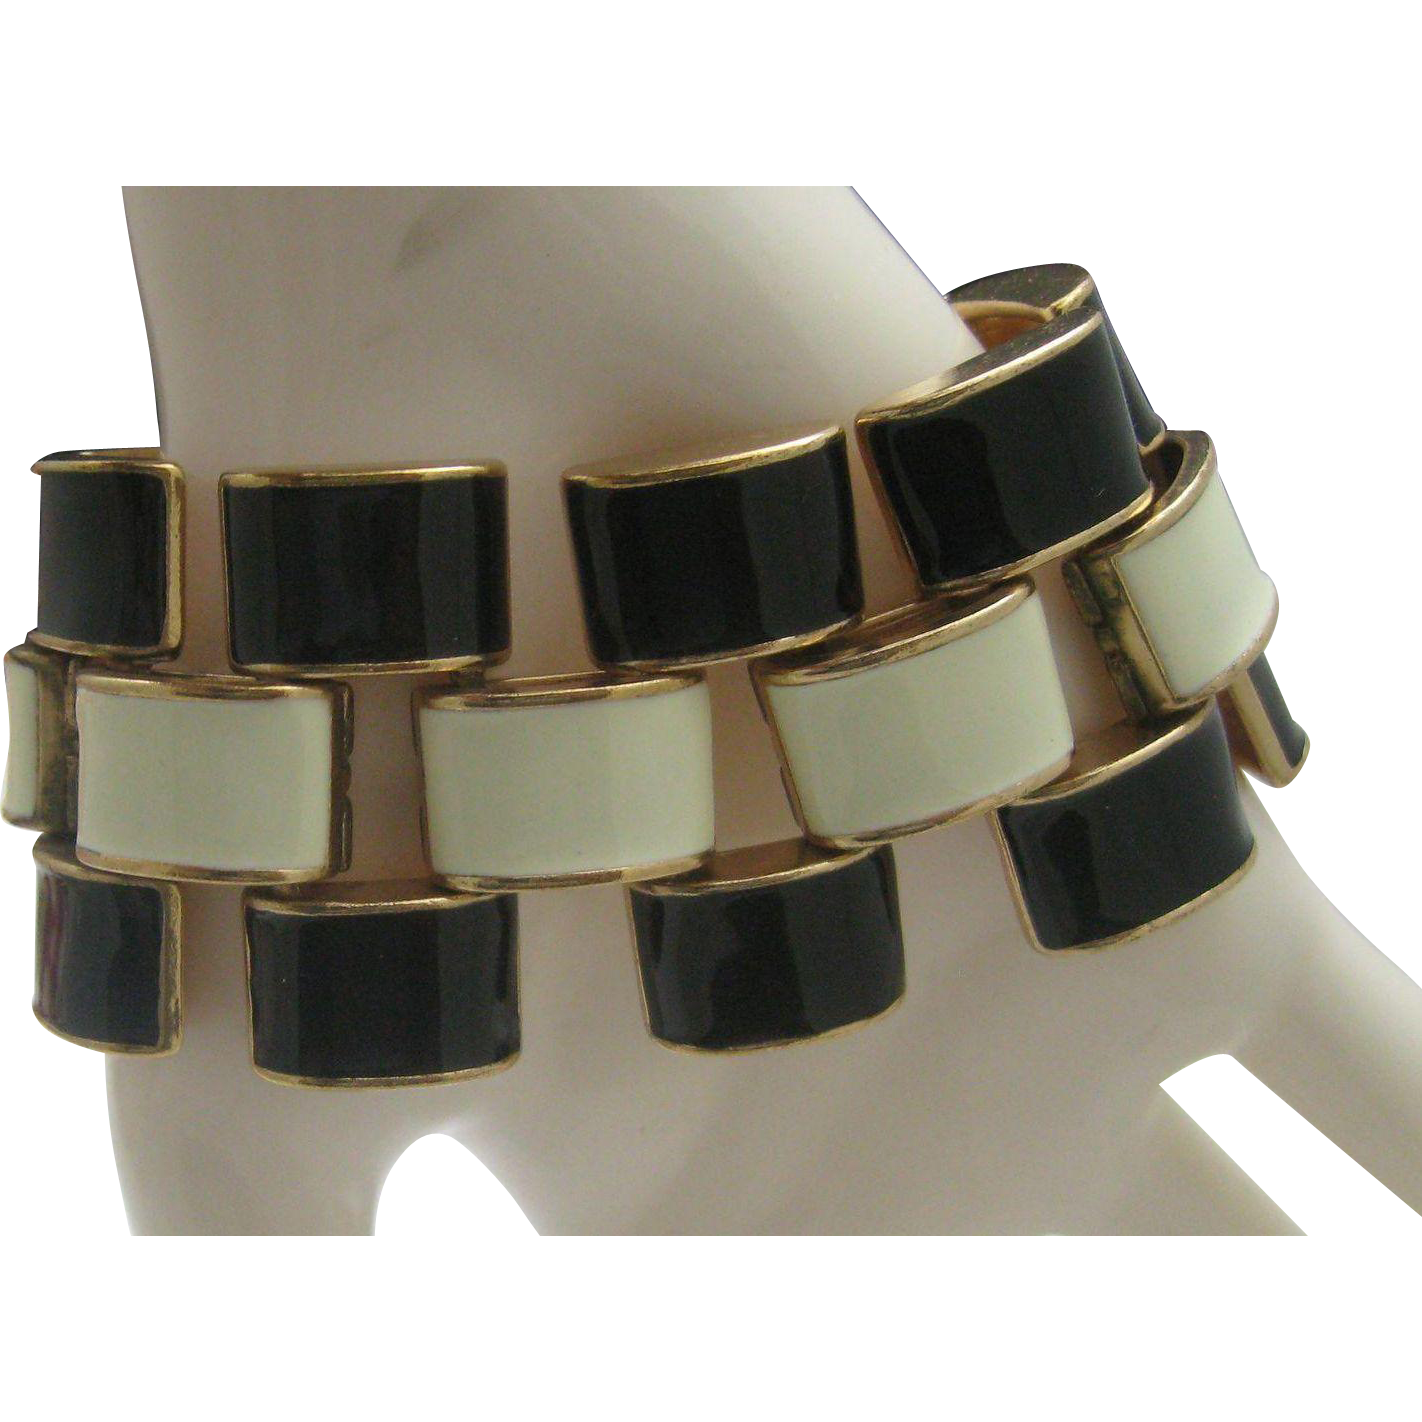 Enameled Tire Tread Bracelet c1970 8 inches